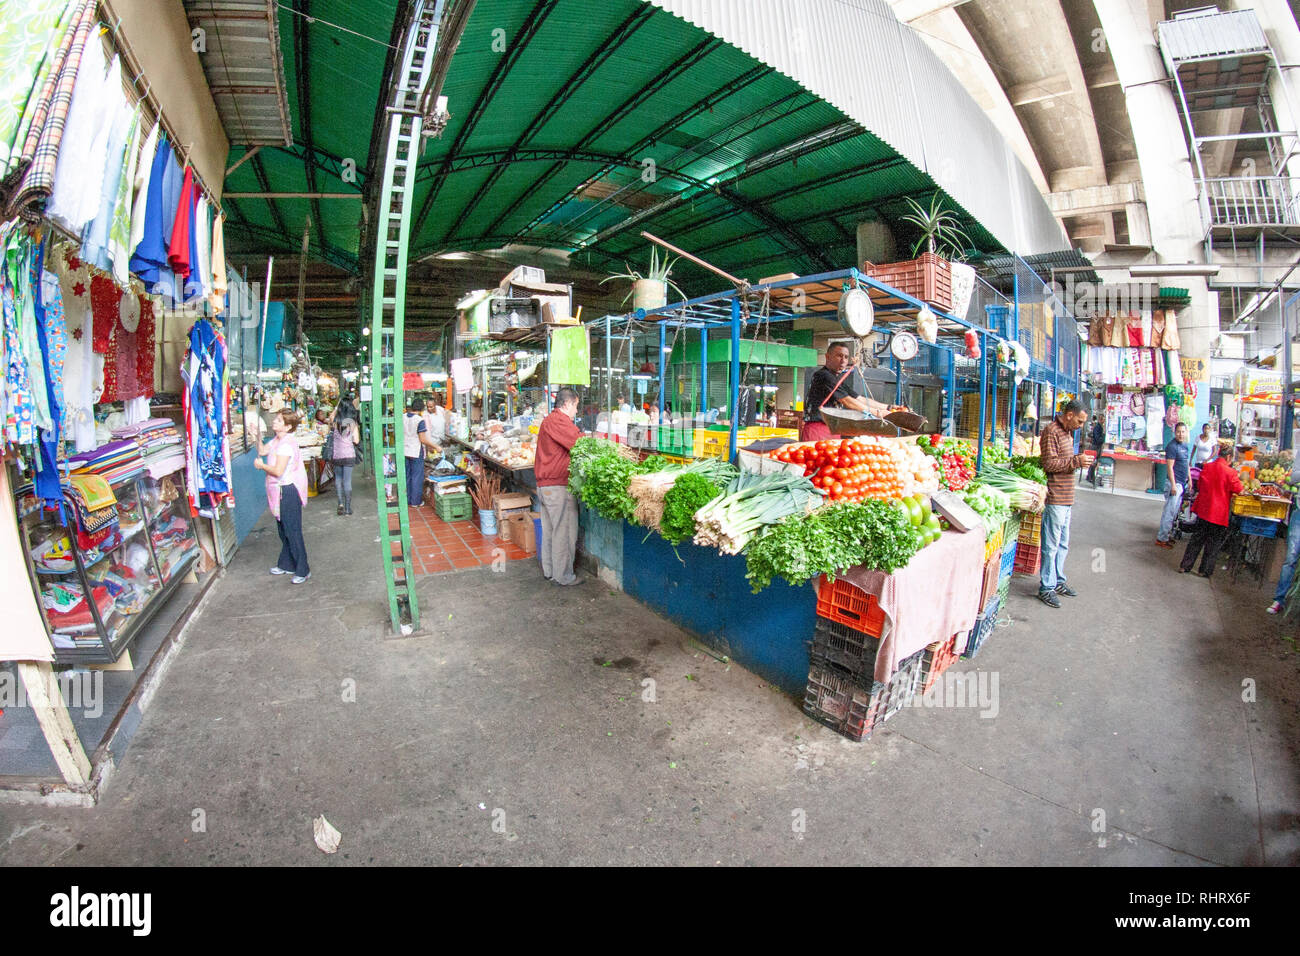 Caracas, Dtto Capital / Venezuela - 04-02-2012 :  People buying in a famous popular market in San Martín Avenue. Stock Photo